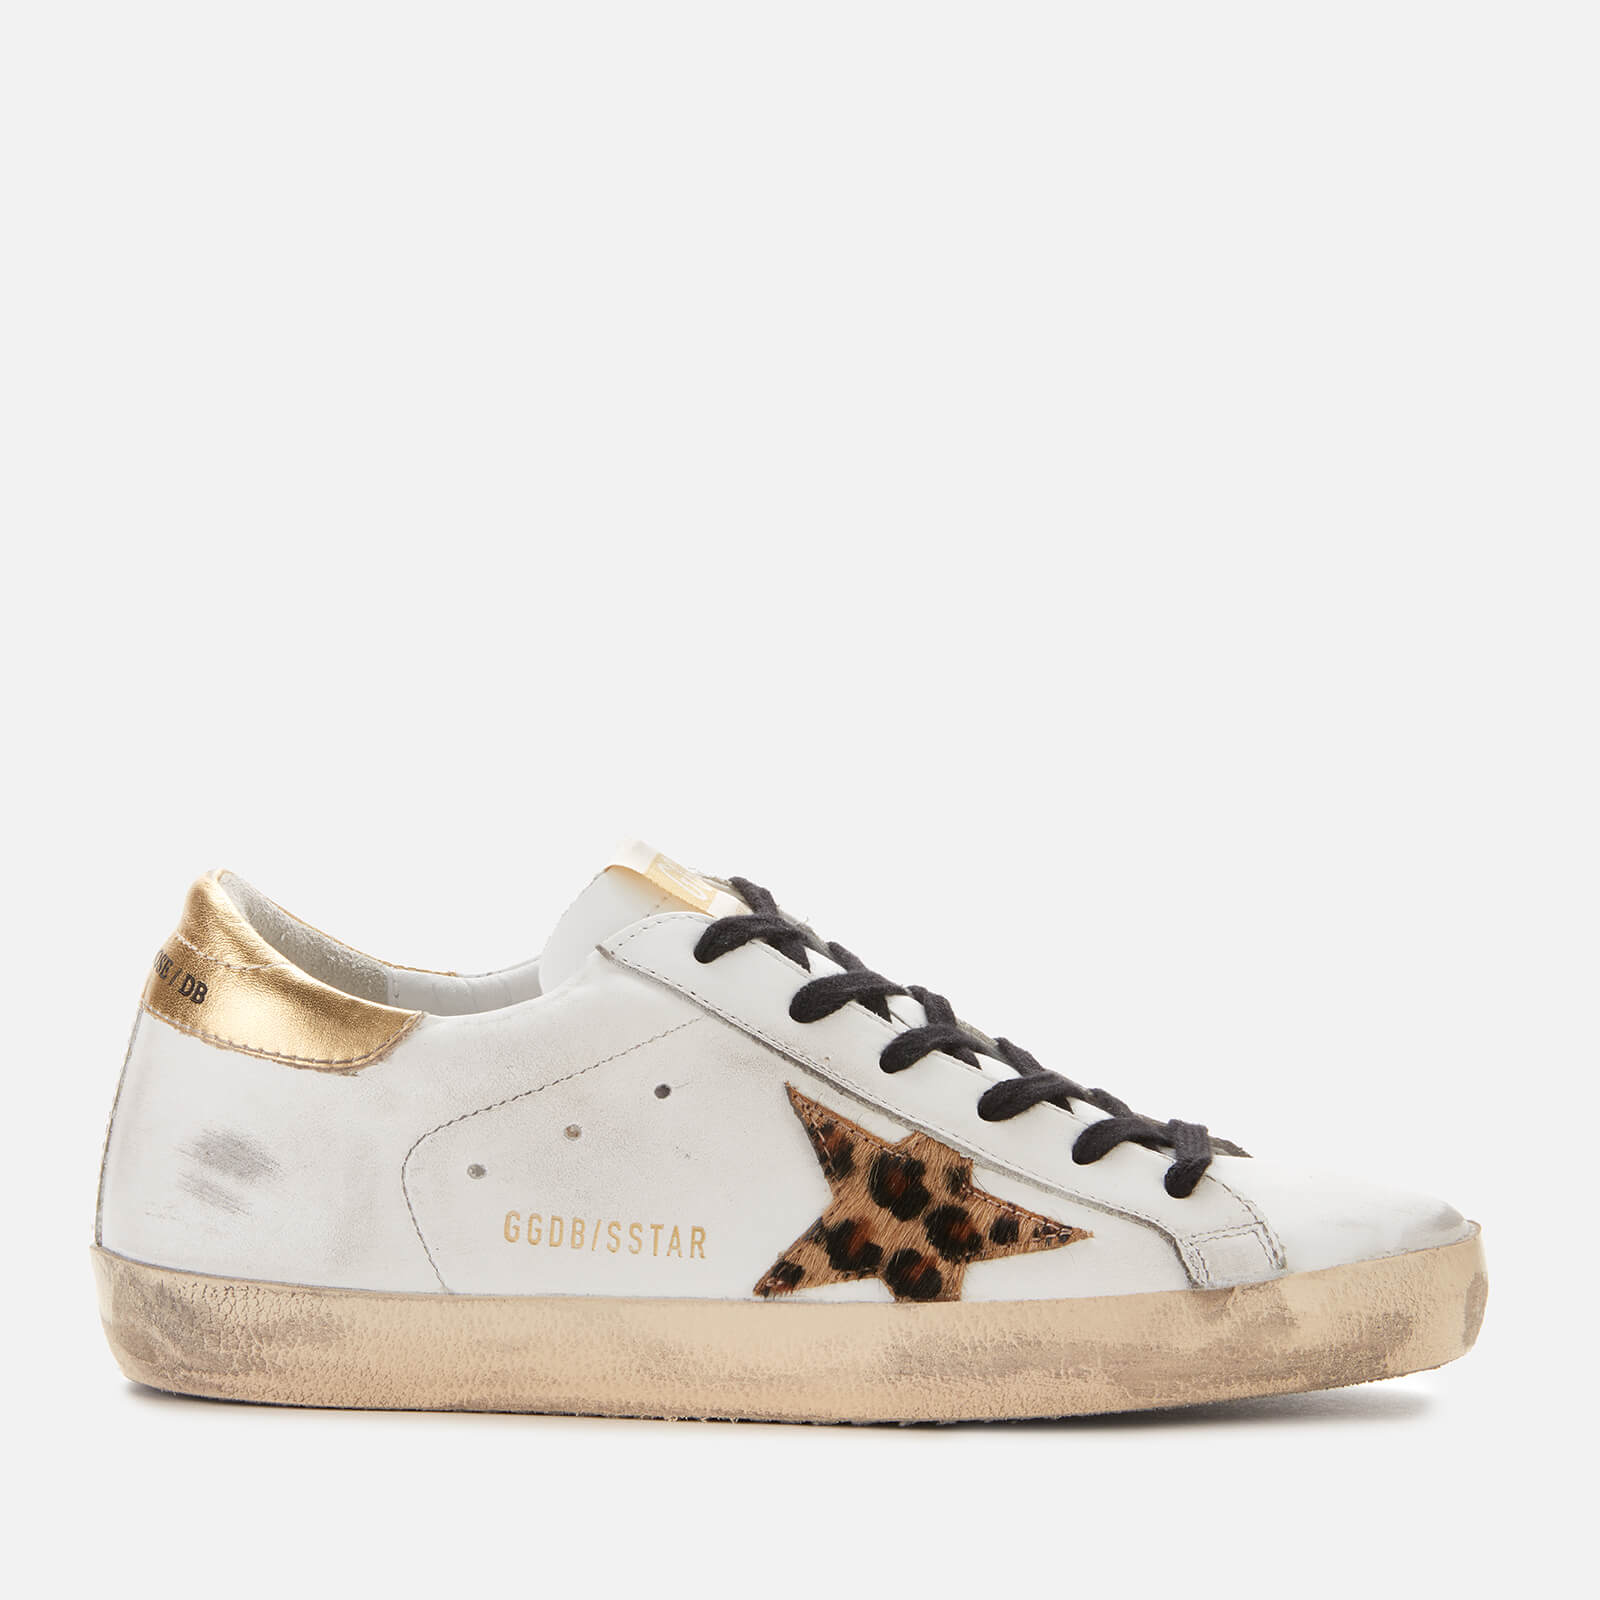 Golden Goose Deluxe Brand Women's Superstar Leather Trainers - White/Gold/Leopard Star - UK 7 - White